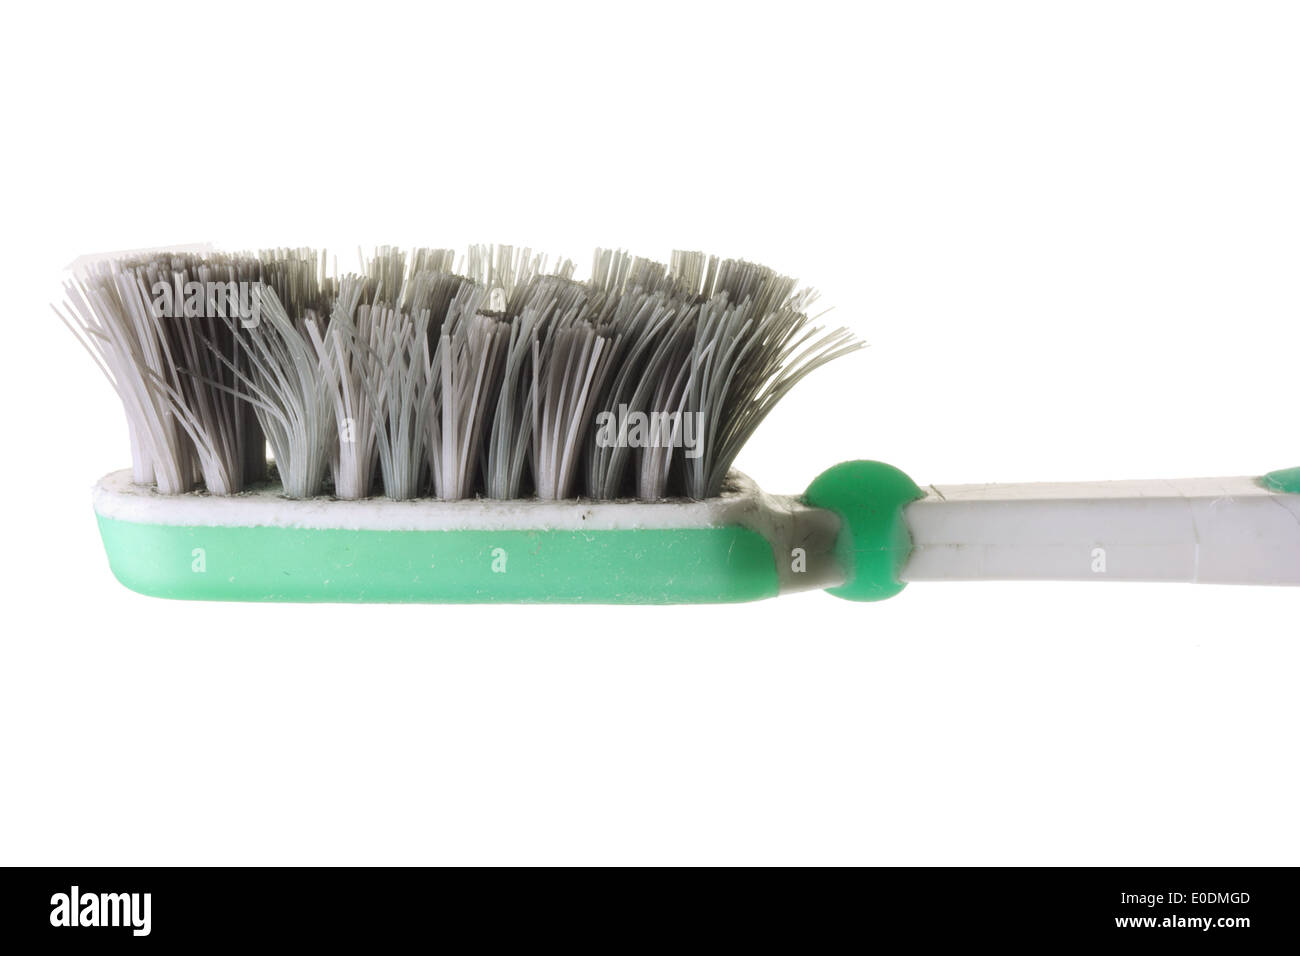 Old Worn-Out Toothbrush - Stock Image